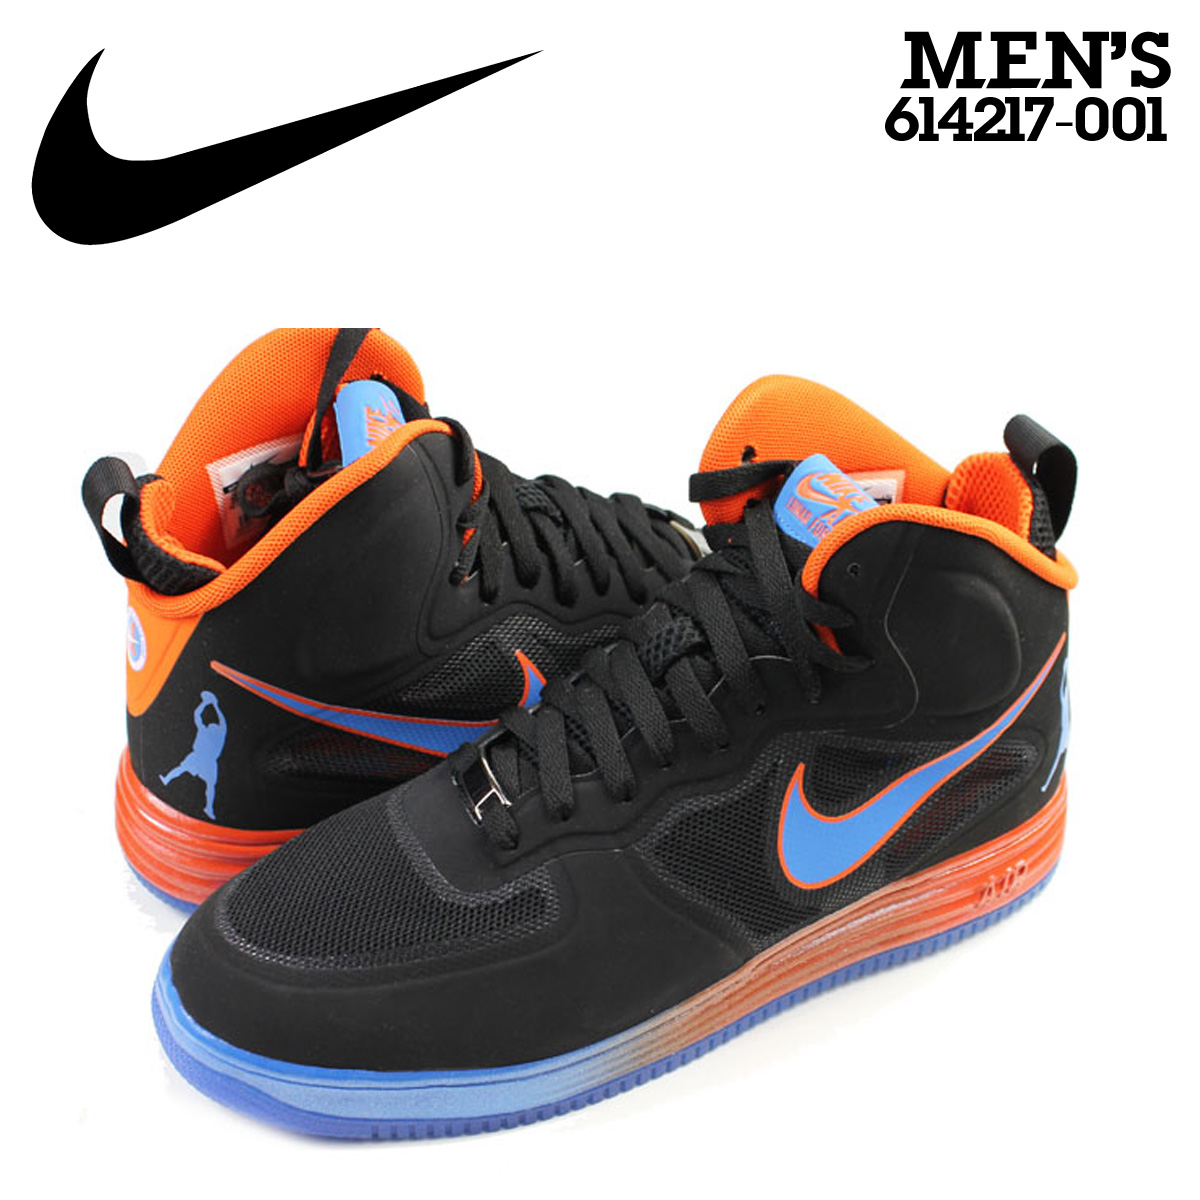 magasin en ligne d6a92 cfcfd Nike NIKE air force sneakers LUNAR FORCE1 MID FUSE QS